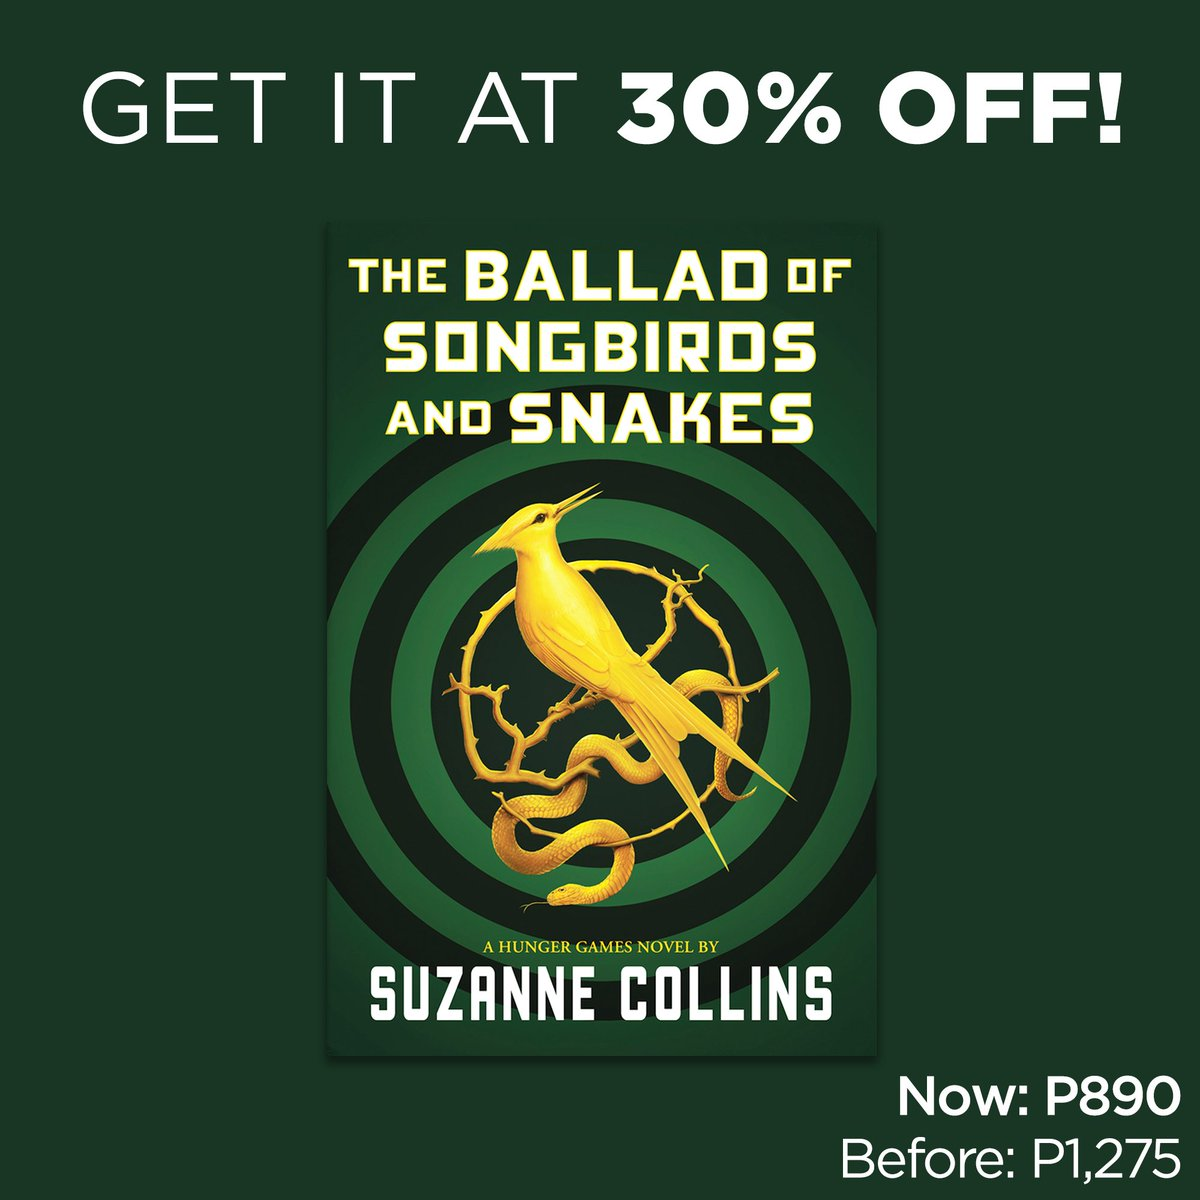 Enjoy this special 9.9 offer: Suzanne Collins' 'The Ballad of Songbirds and Snakes' is now available for only P890 (before: P1,275)! #TheBalladOfSongbirdsAndSnakes #SuzanneCollins #TheHungerGames #NBSbookstagram #NBSeveryday